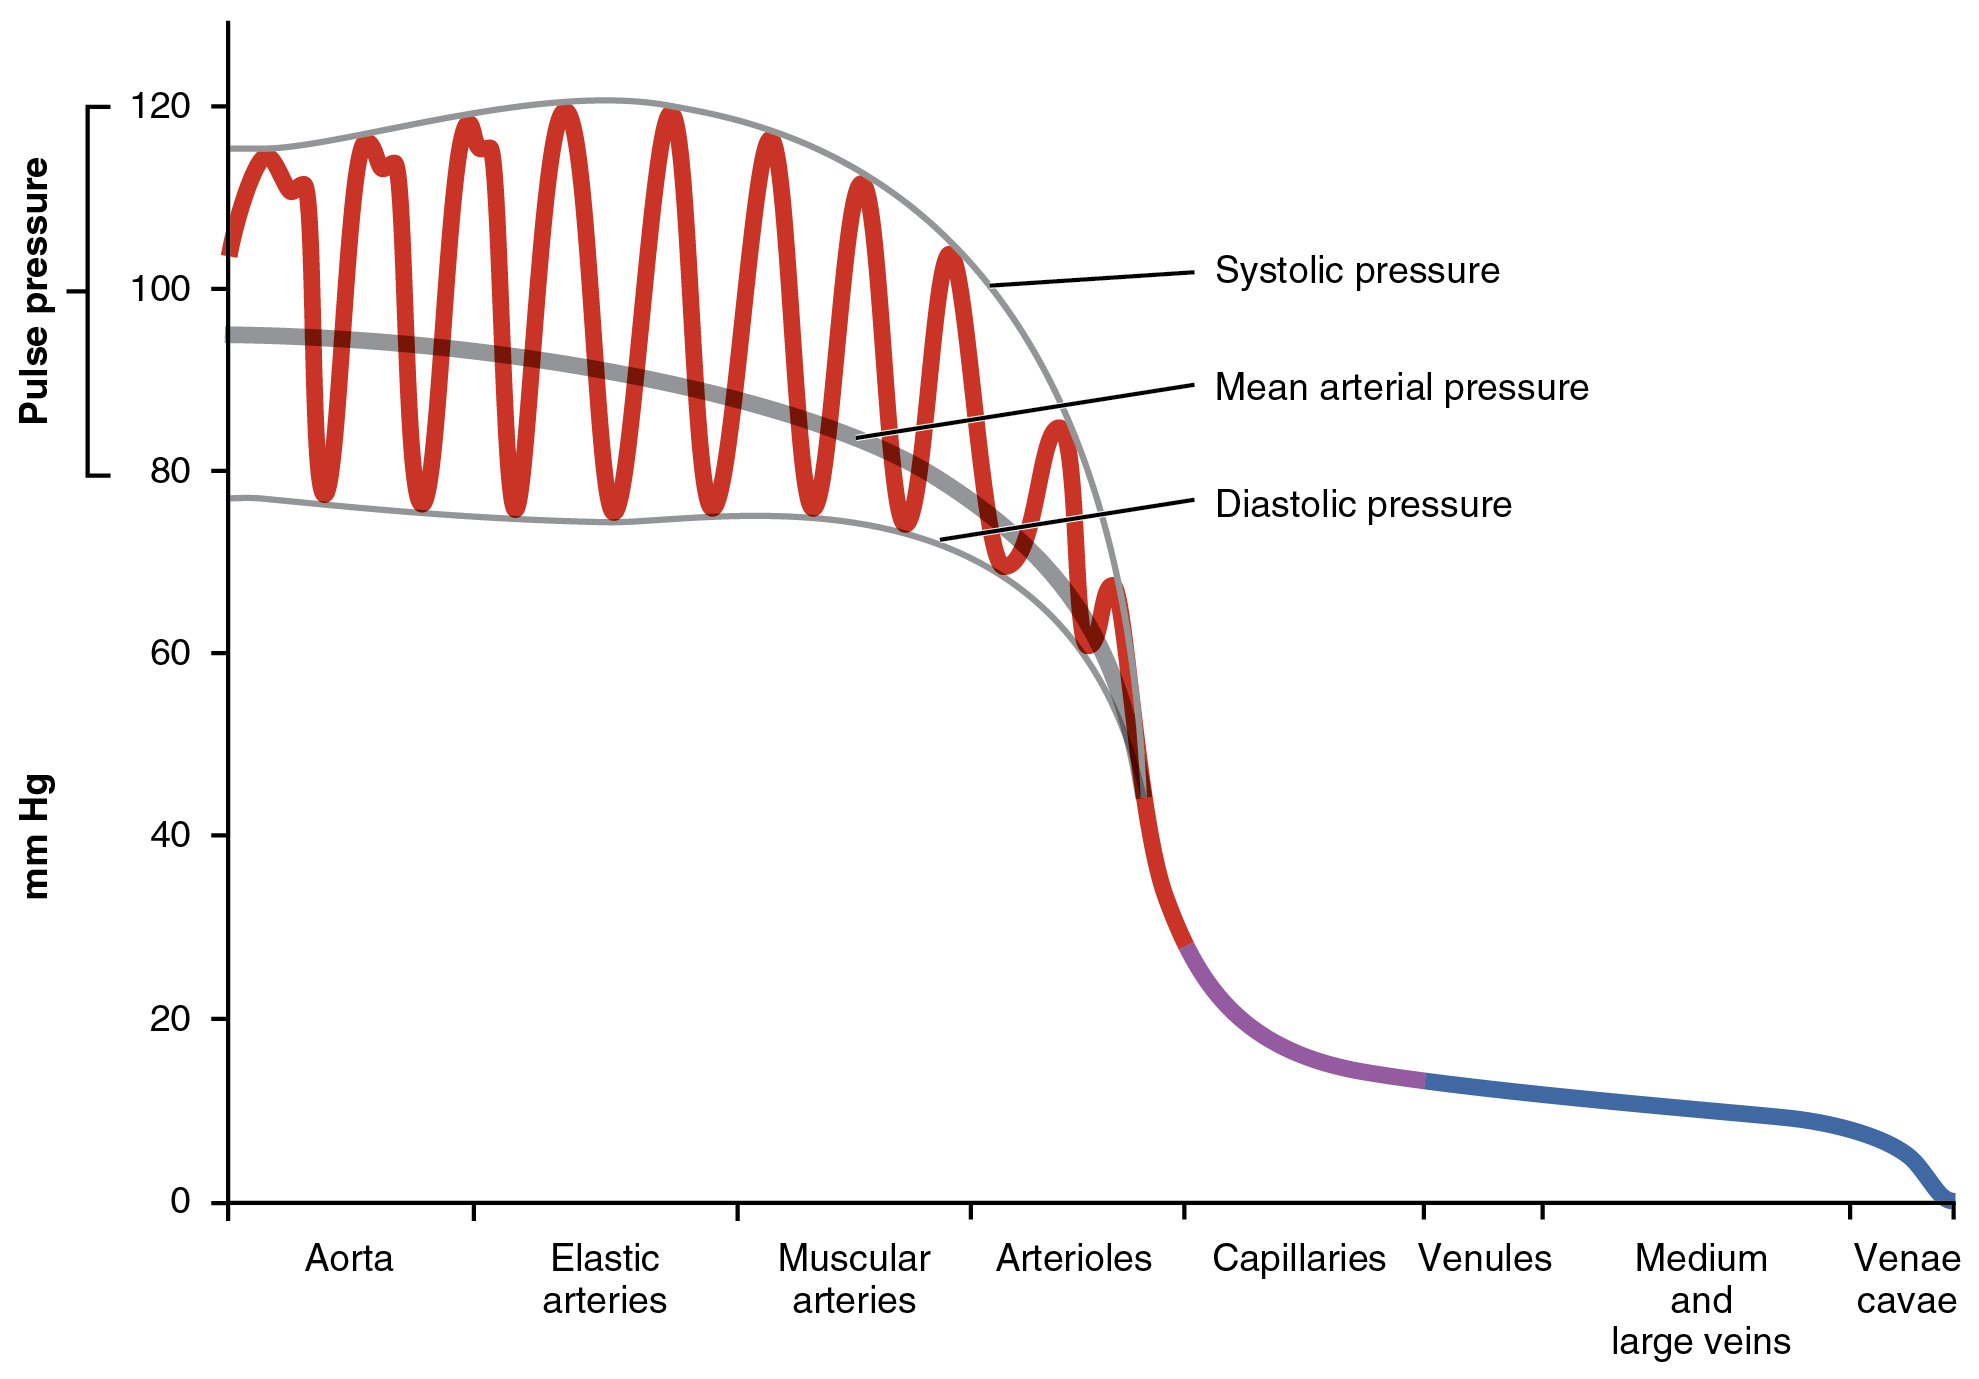 This graph shows the value of pulse pressure in different types of blood vessels.